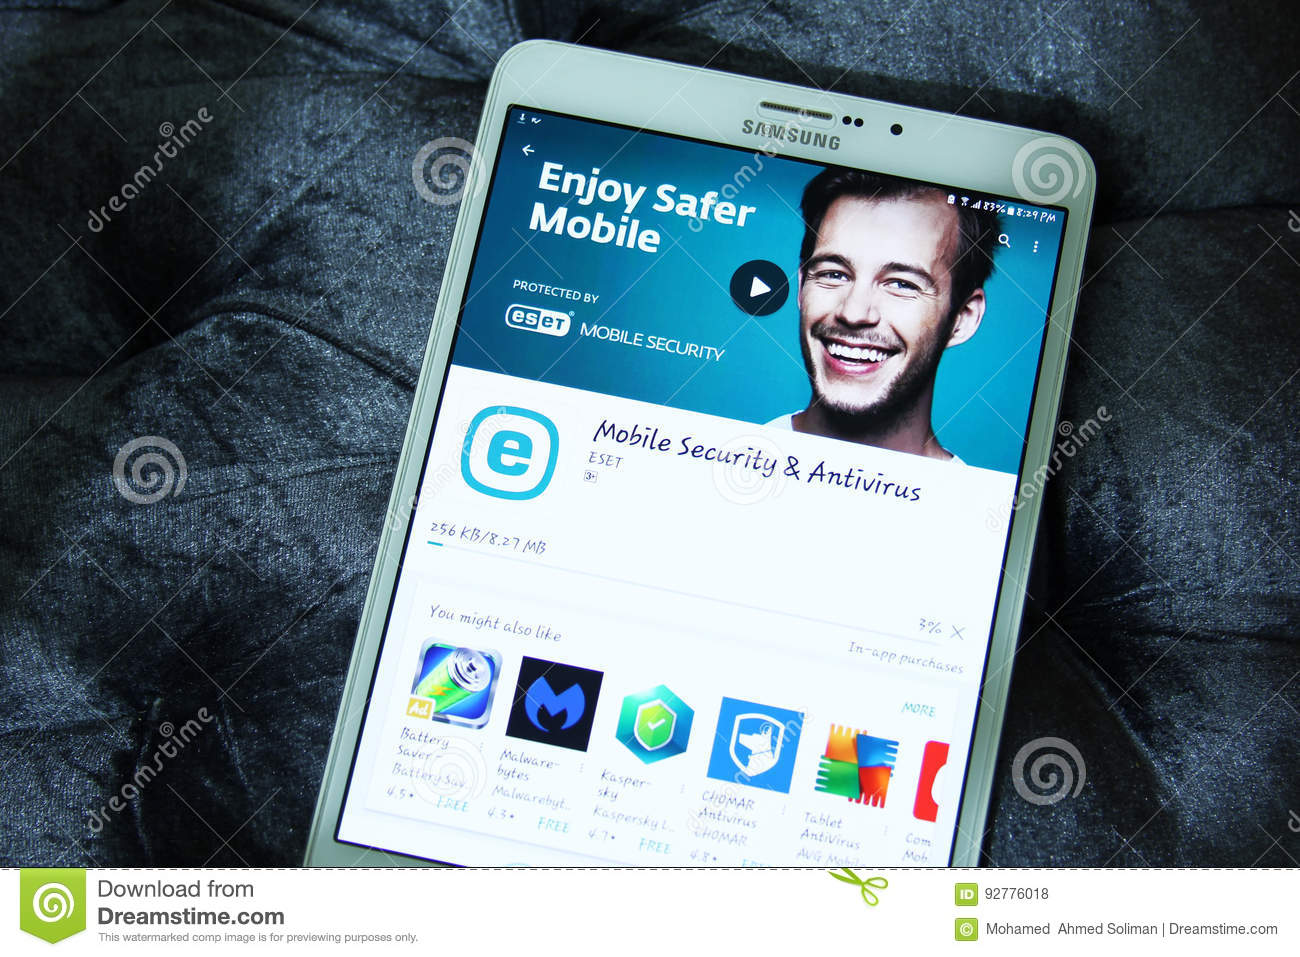 Eset Mobile Security And Antivirus App Editorial Stock Photo - Image